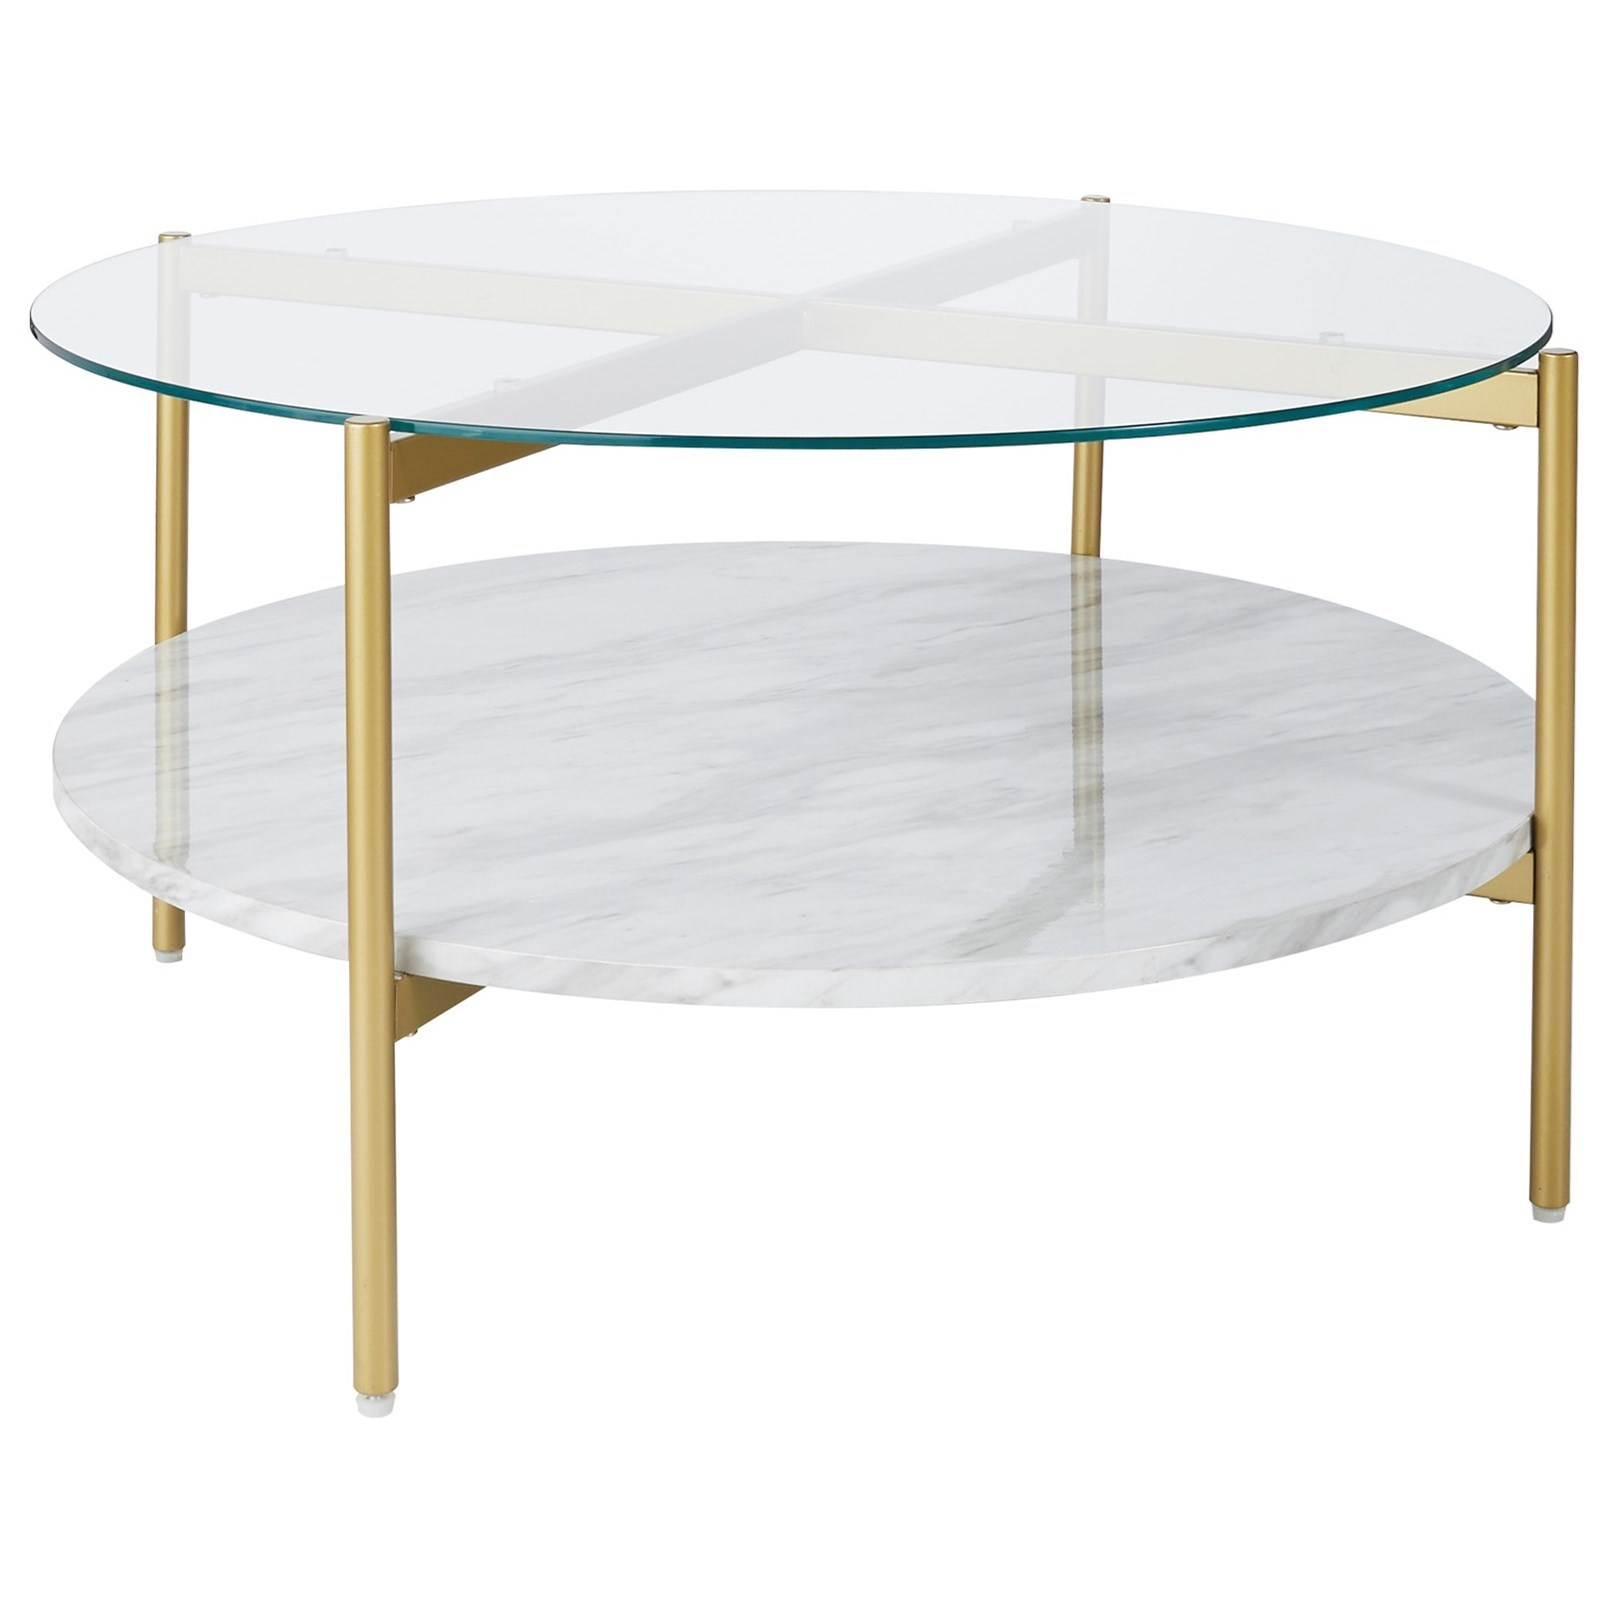 Wynora Gold Finish Round Cocktail Table With Glass Top And Faux Marble Shelf Belfort Furniture Cocktail Coffee Tables